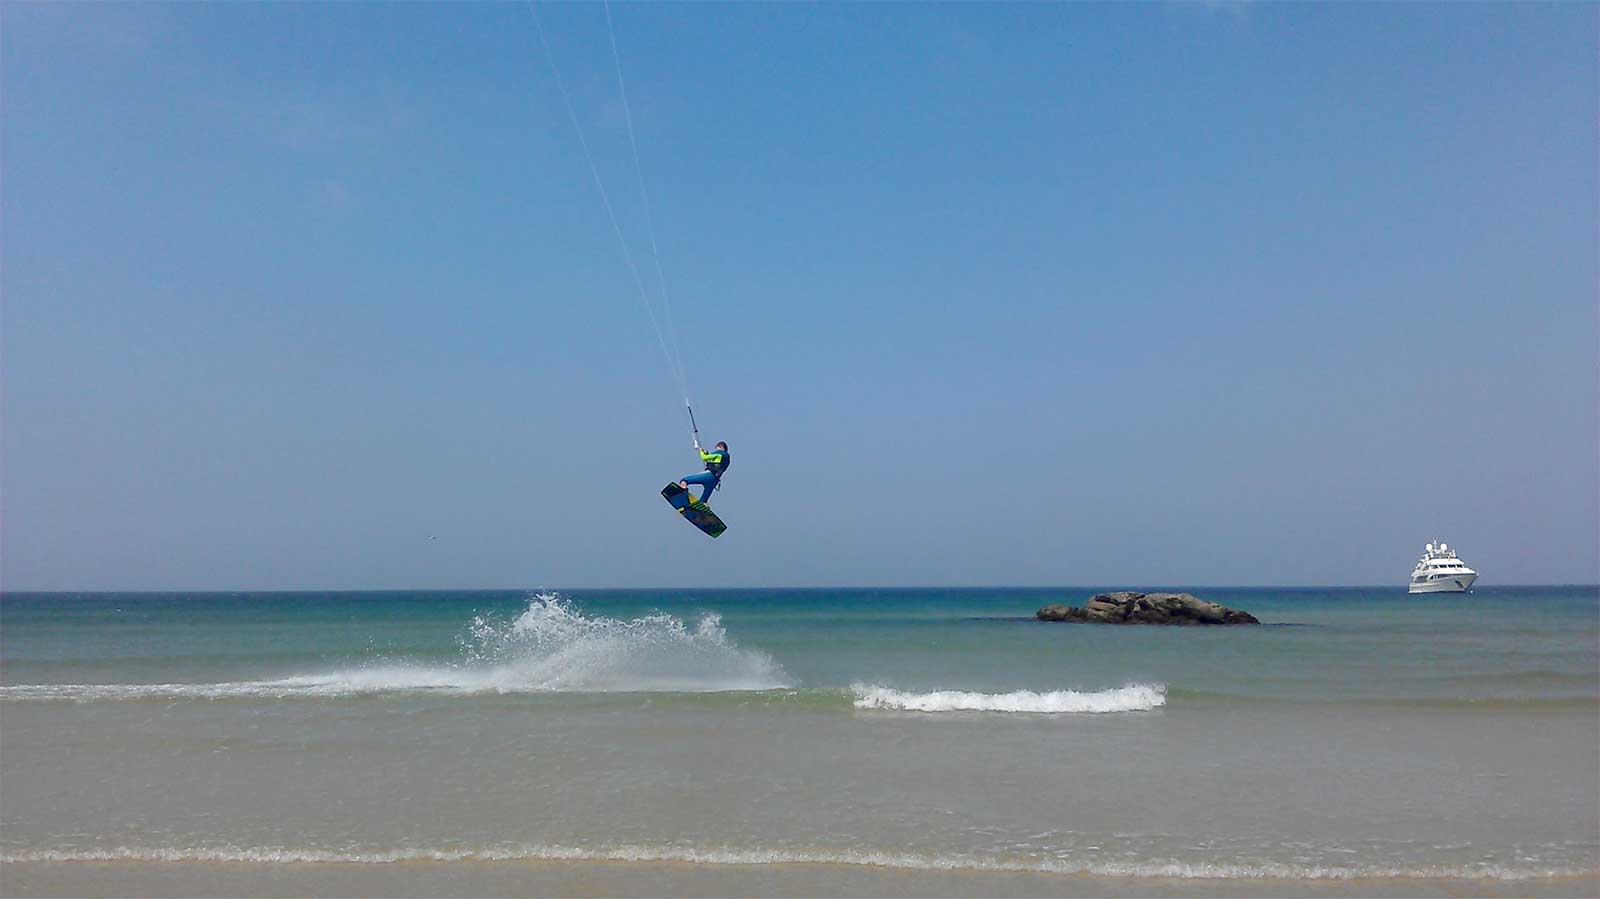 Kitesurfing near the Old Town, Tarifa